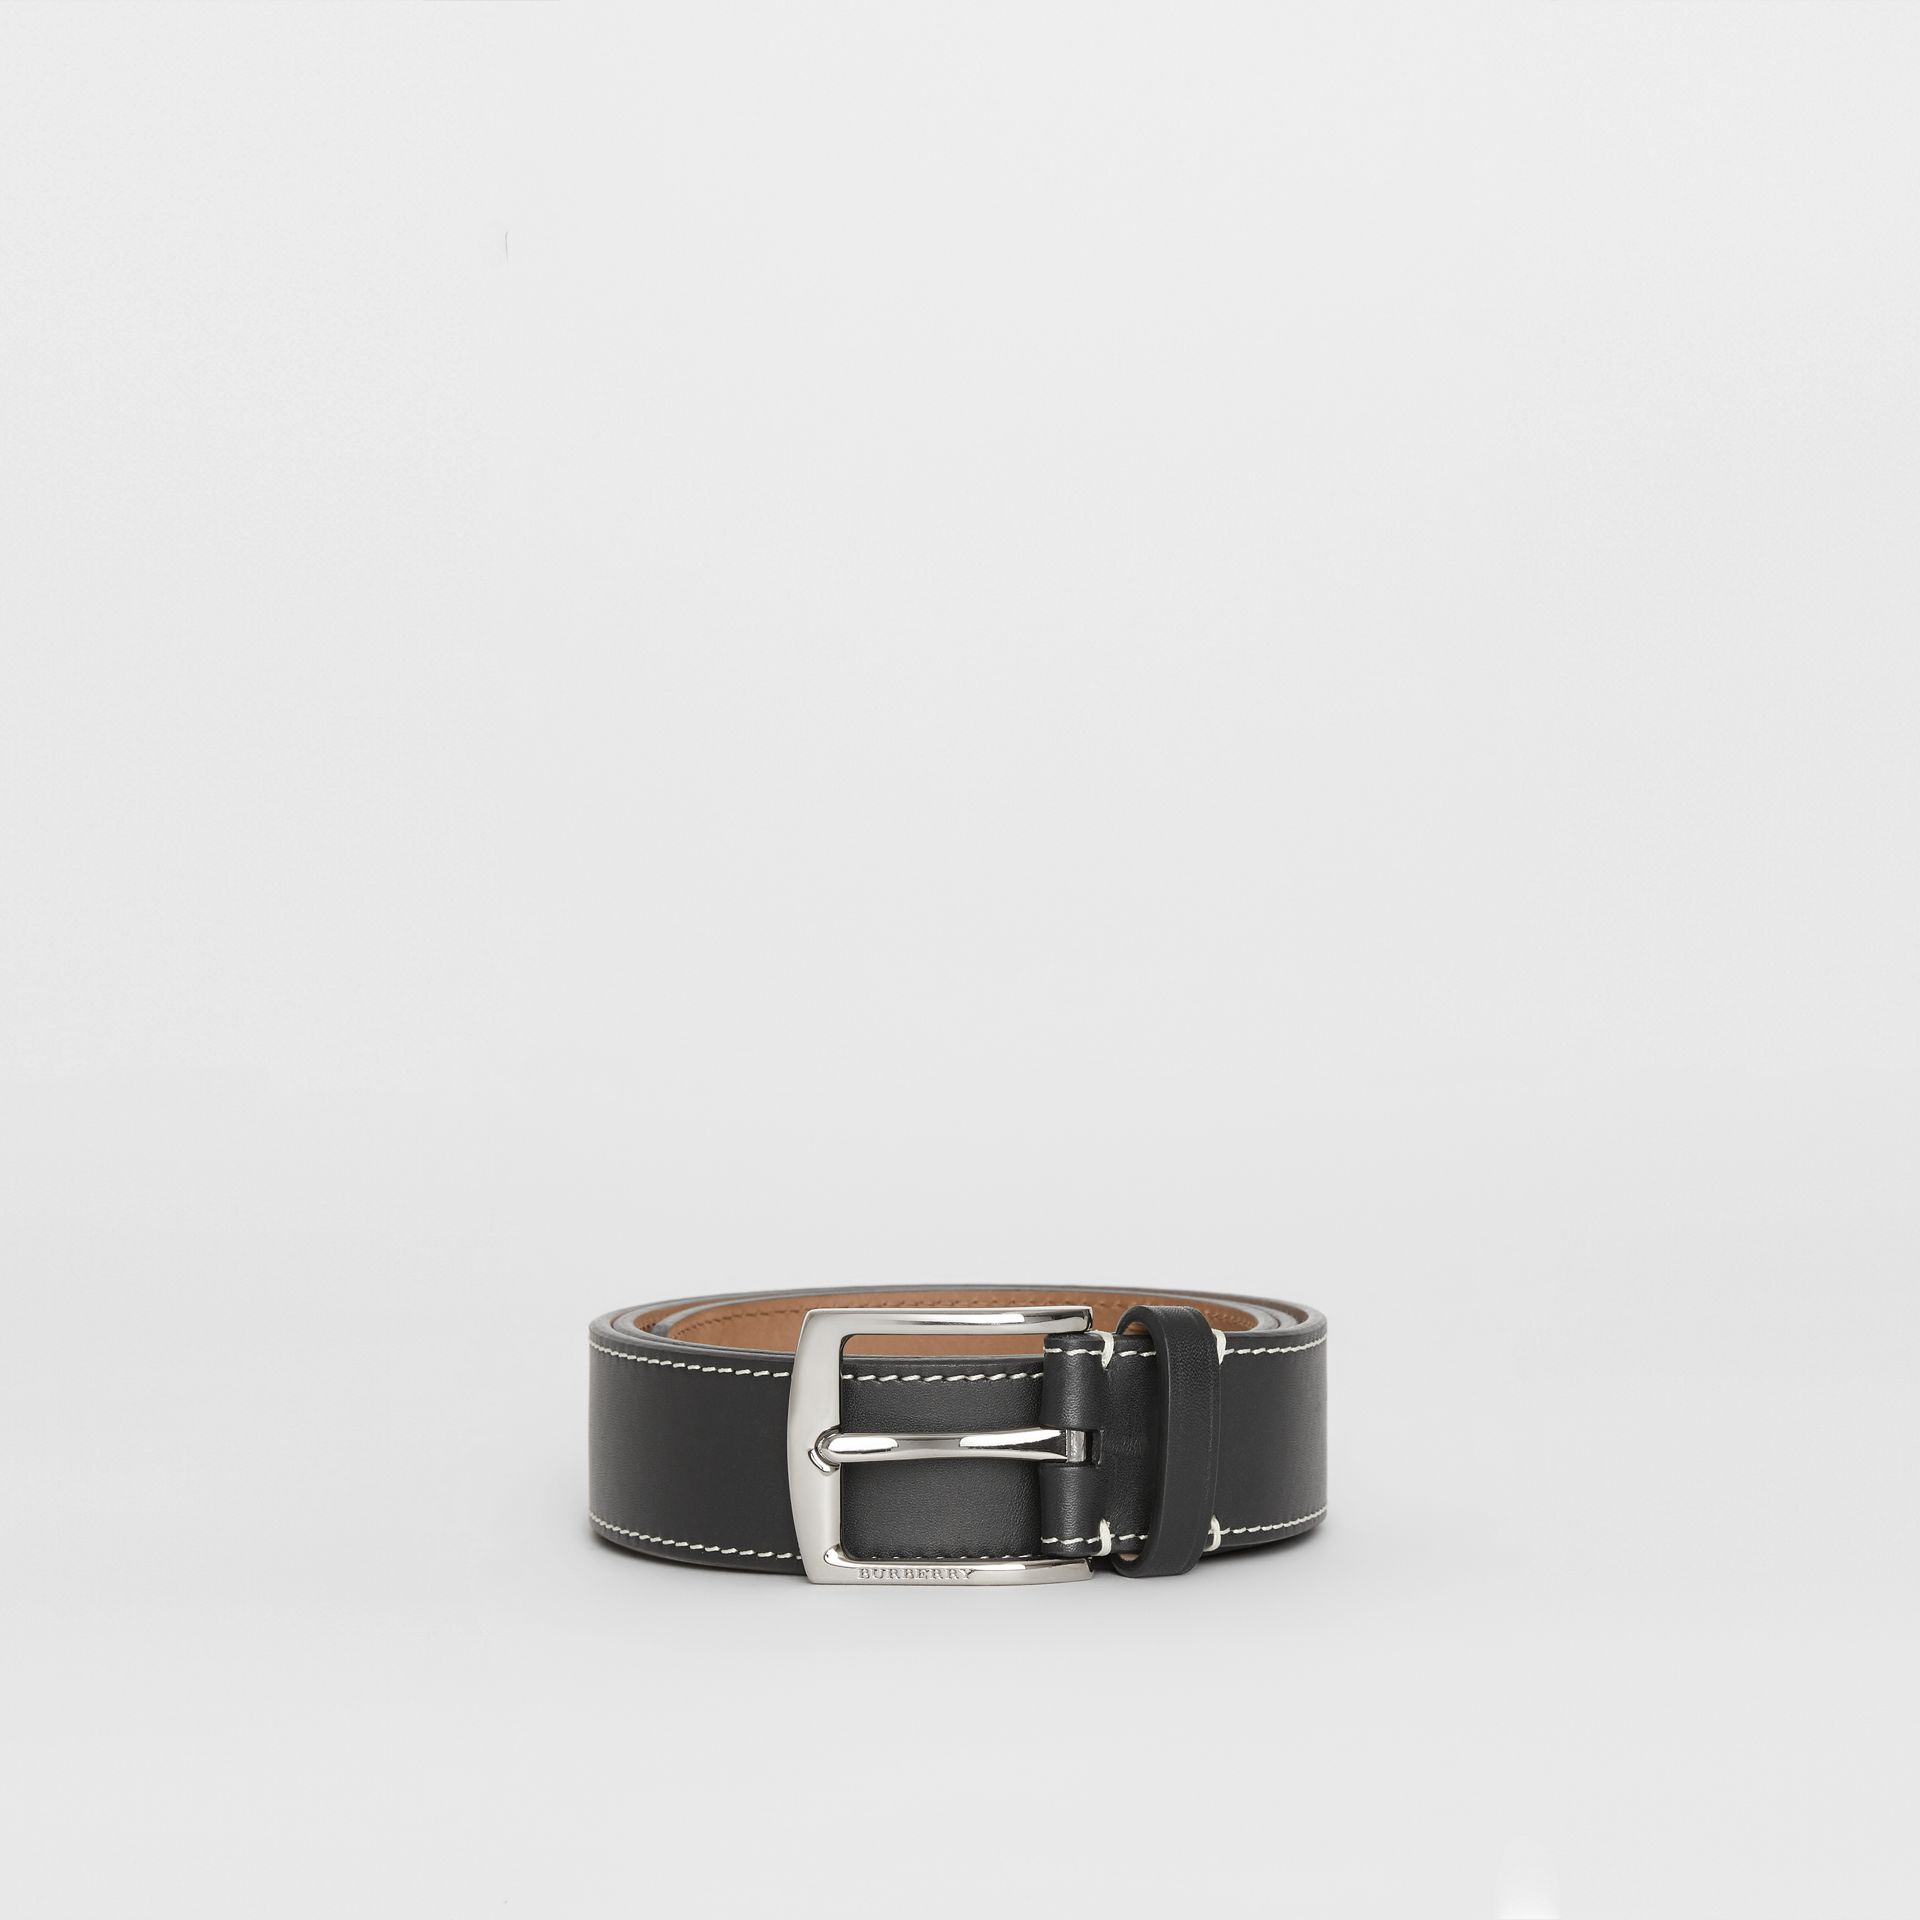 Topstitched Leather Belt in Black - Men | Burberry Australia - gallery image 3